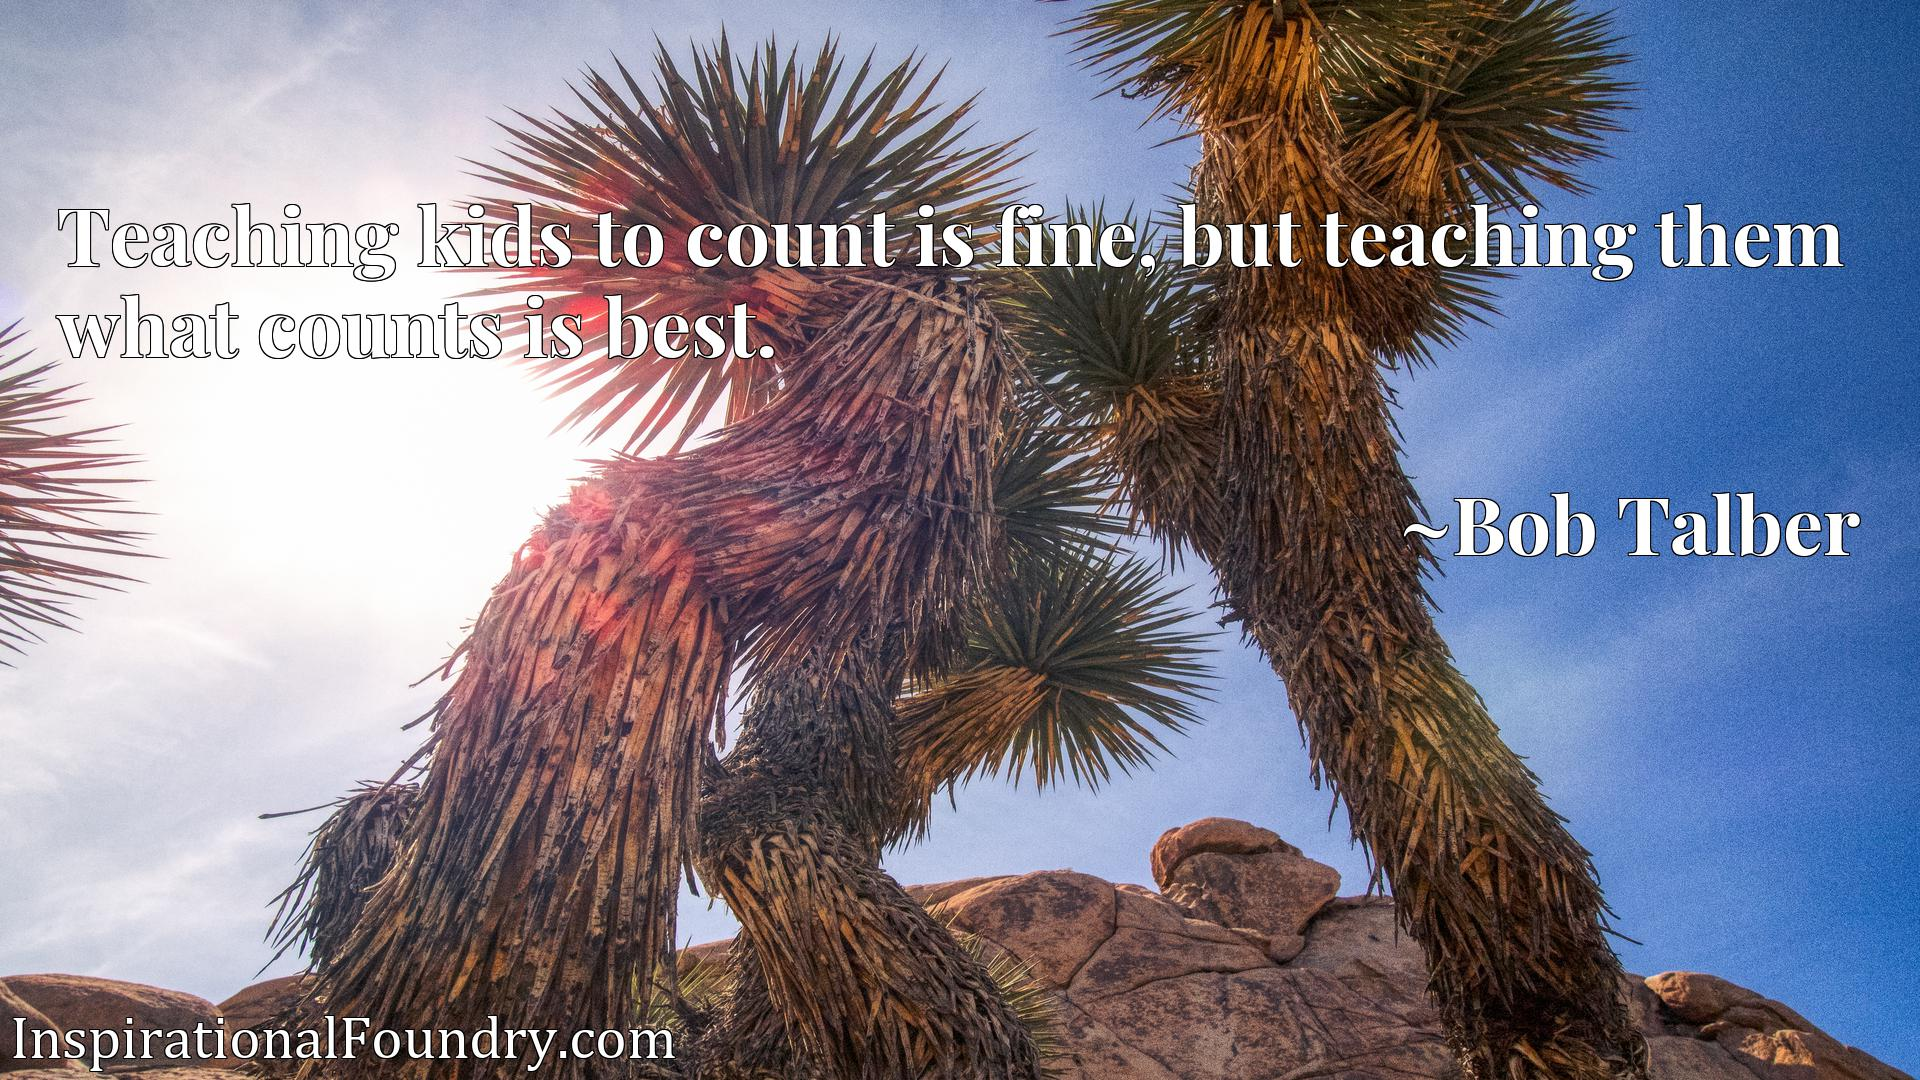 Teaching kids to count is fine, but teaching them what counts is best.